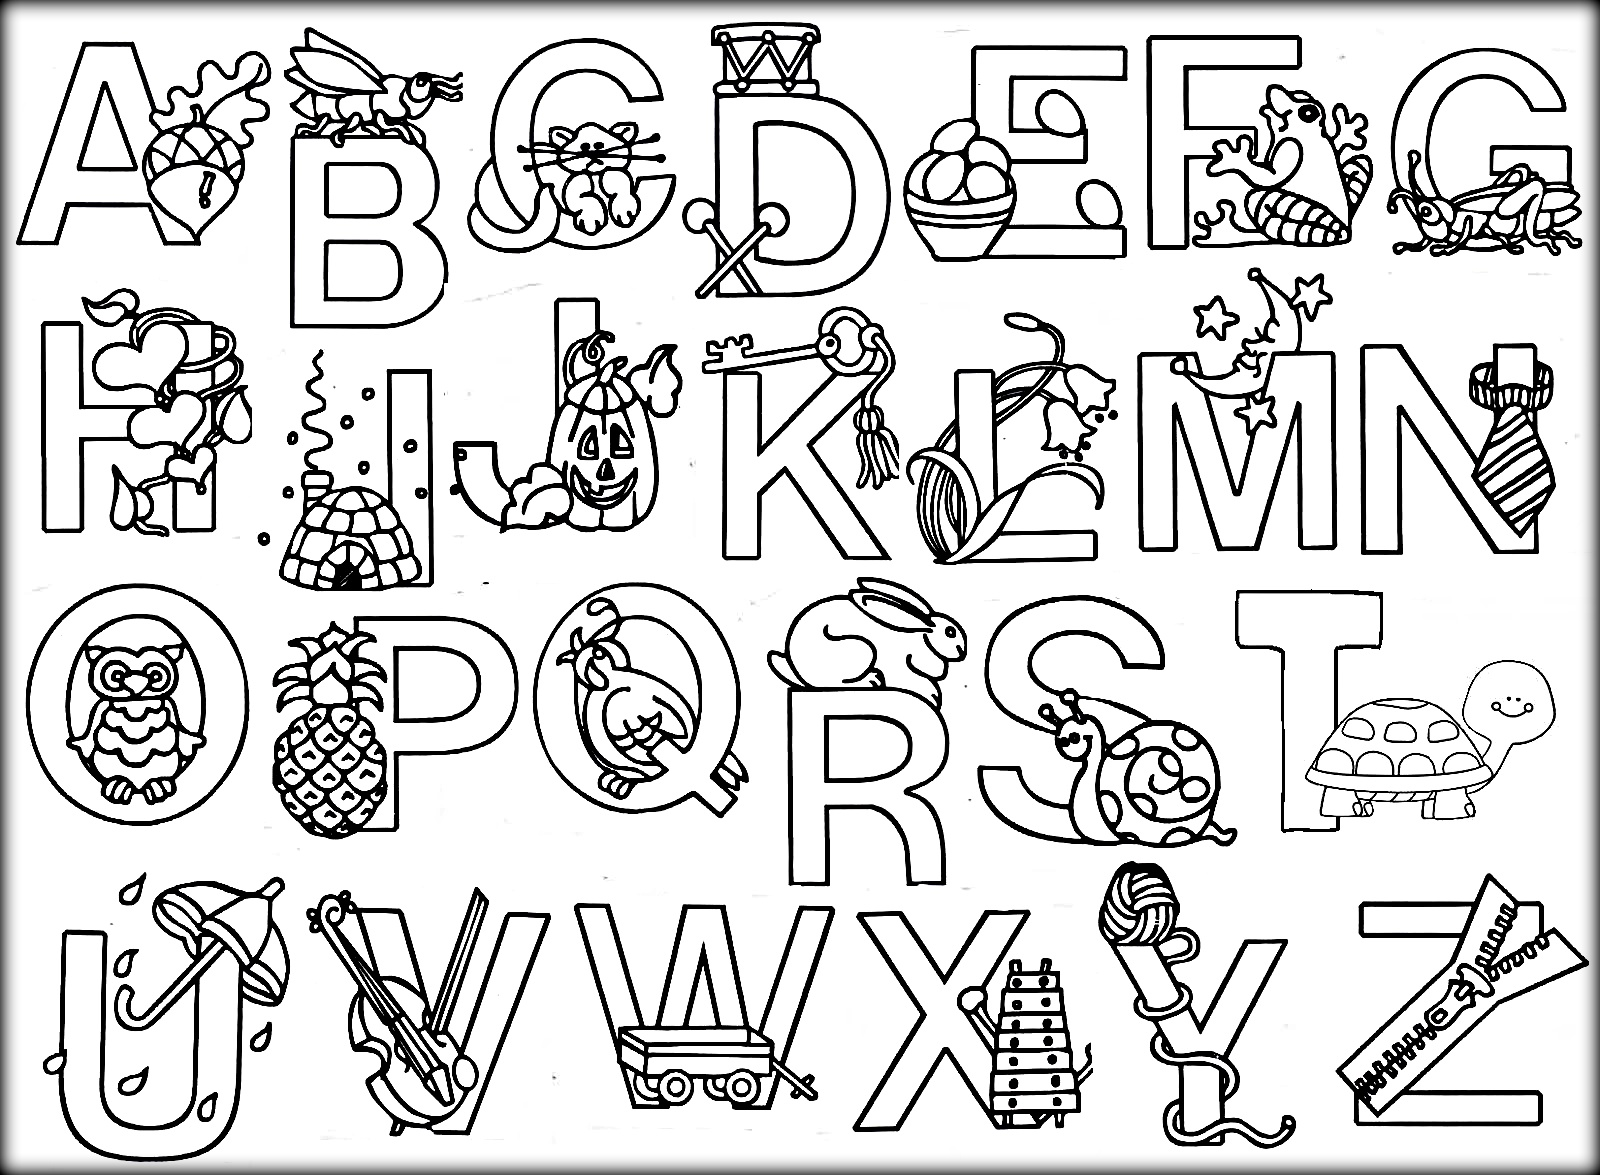 Alphabet Coloring Pages With Pictures.